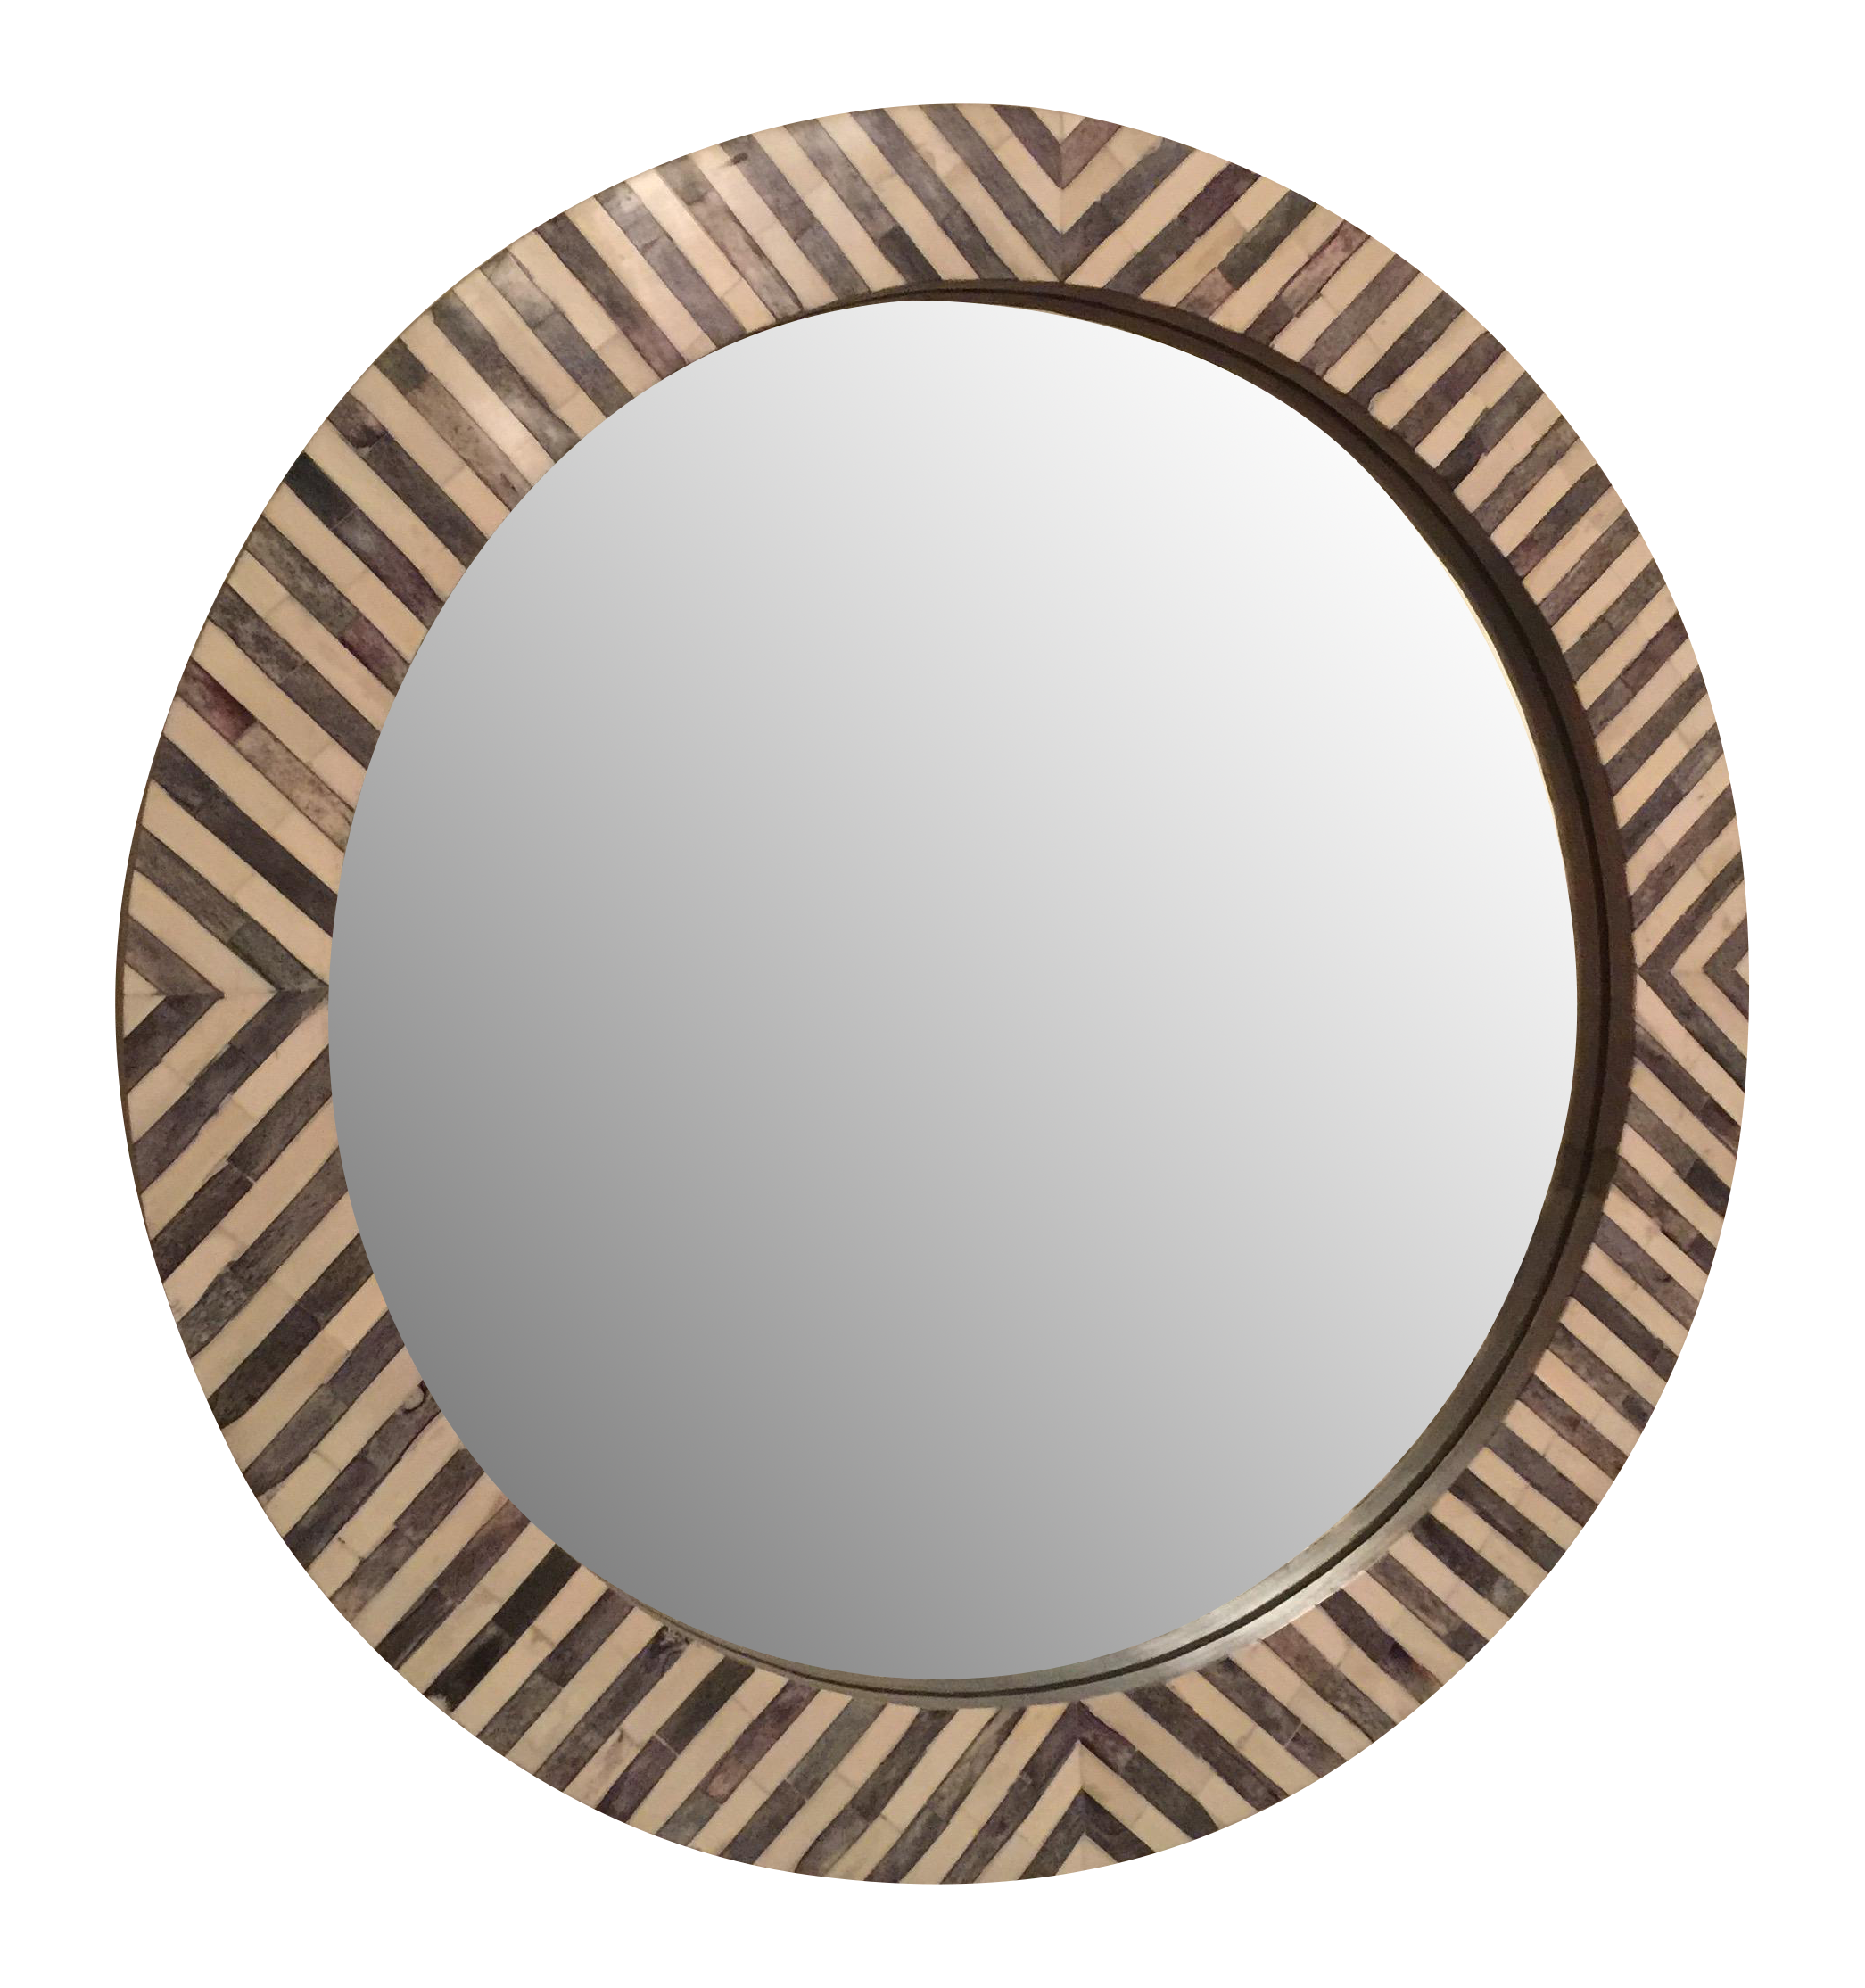 West elm round herringbone parsons wall mirror chairish amipublicfo Choice Image